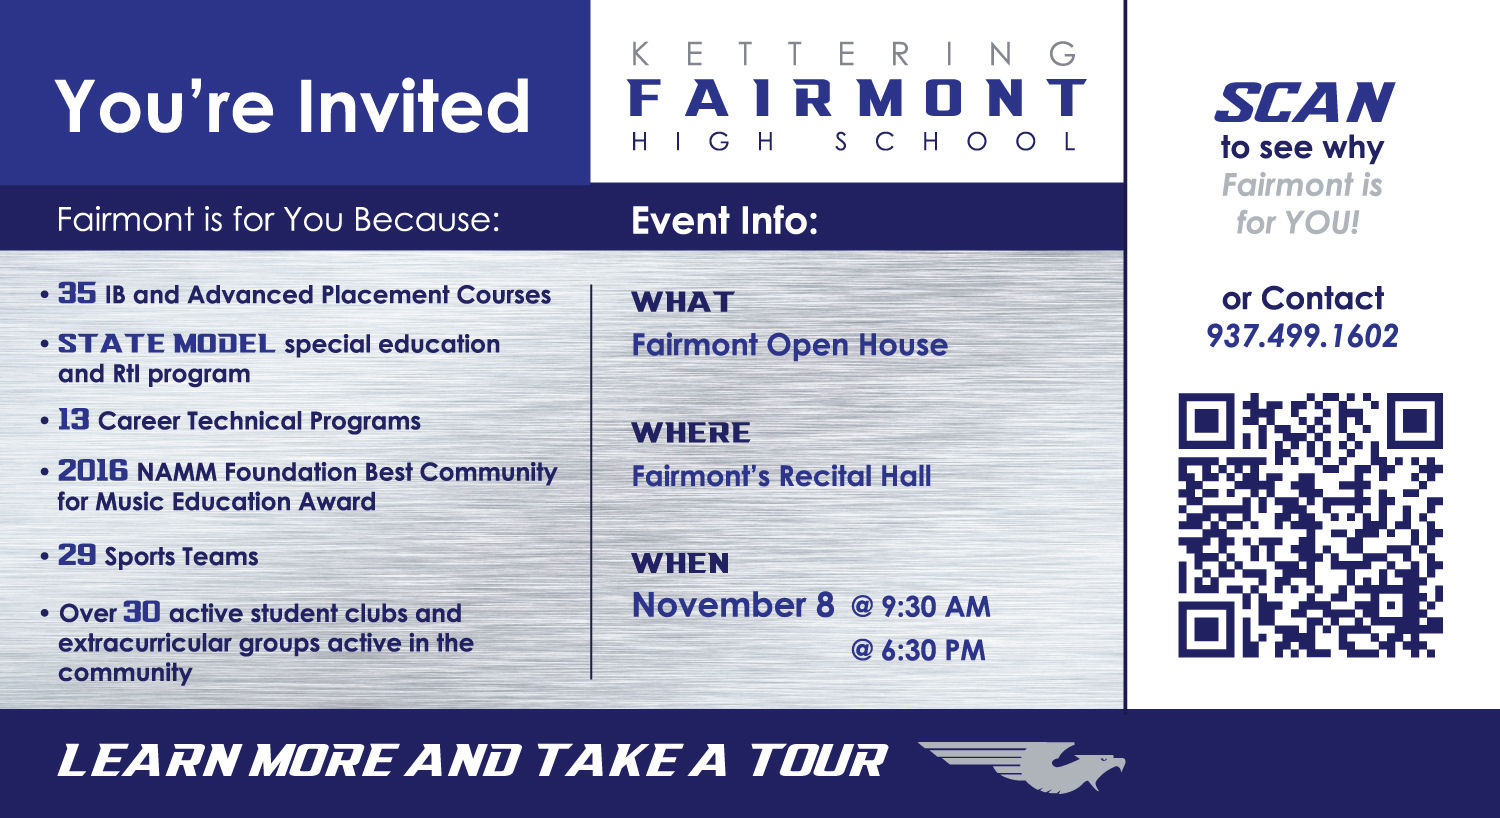 Prospective Student Open House -- November 8, 9:30 a.m. and 6:30 p.m.